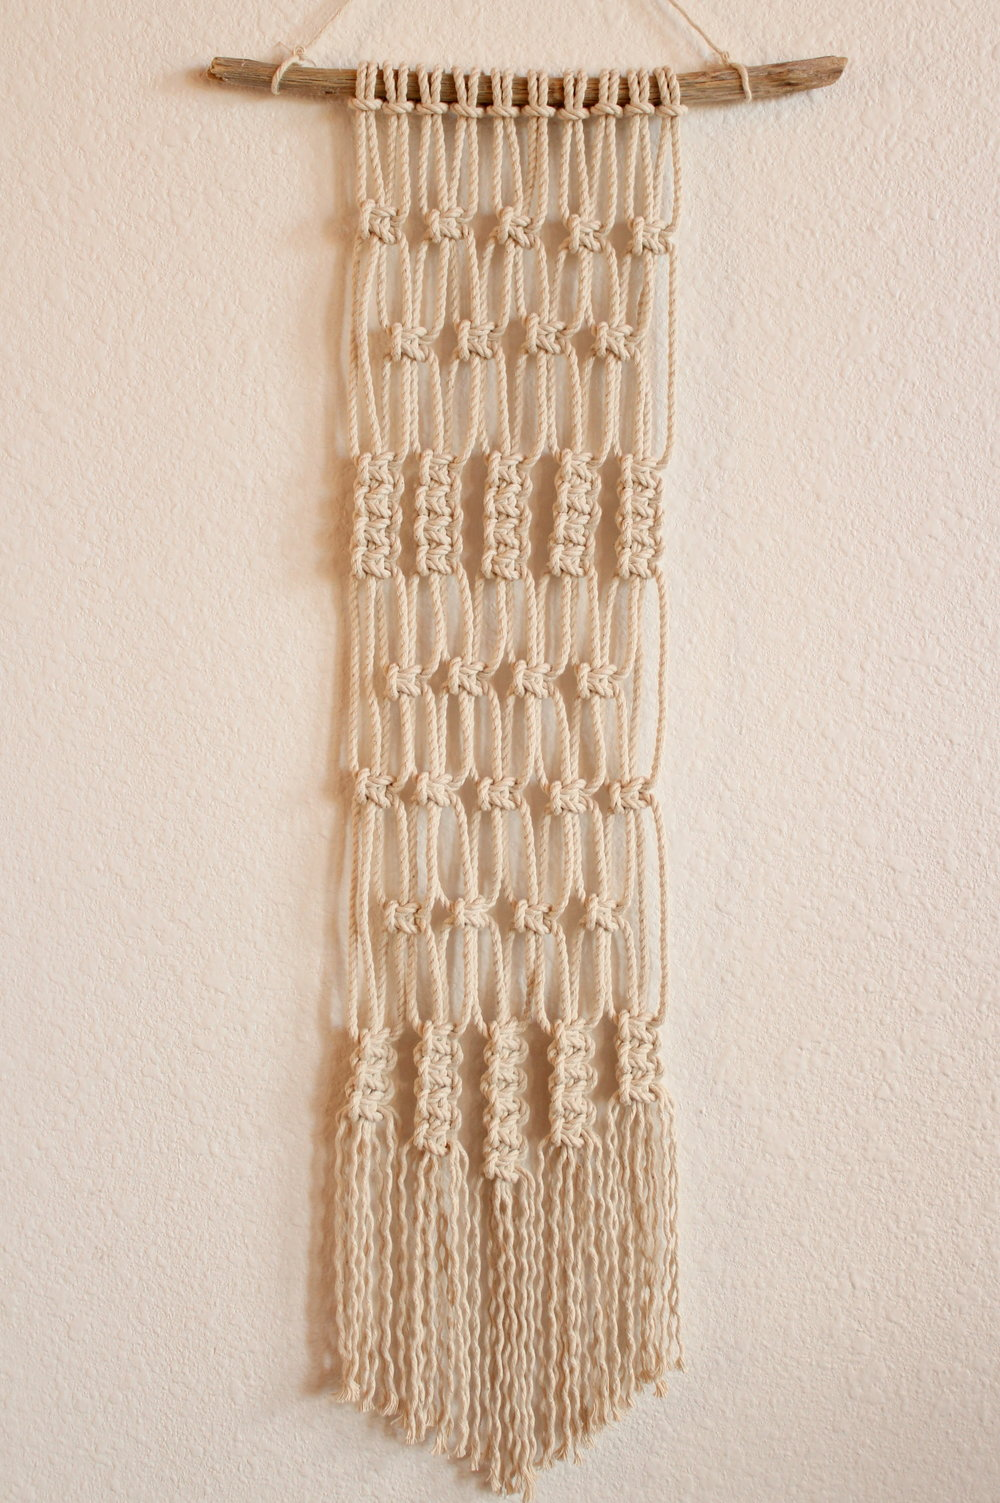 REEDS AND RUSHES MACRAME WALL HANGING